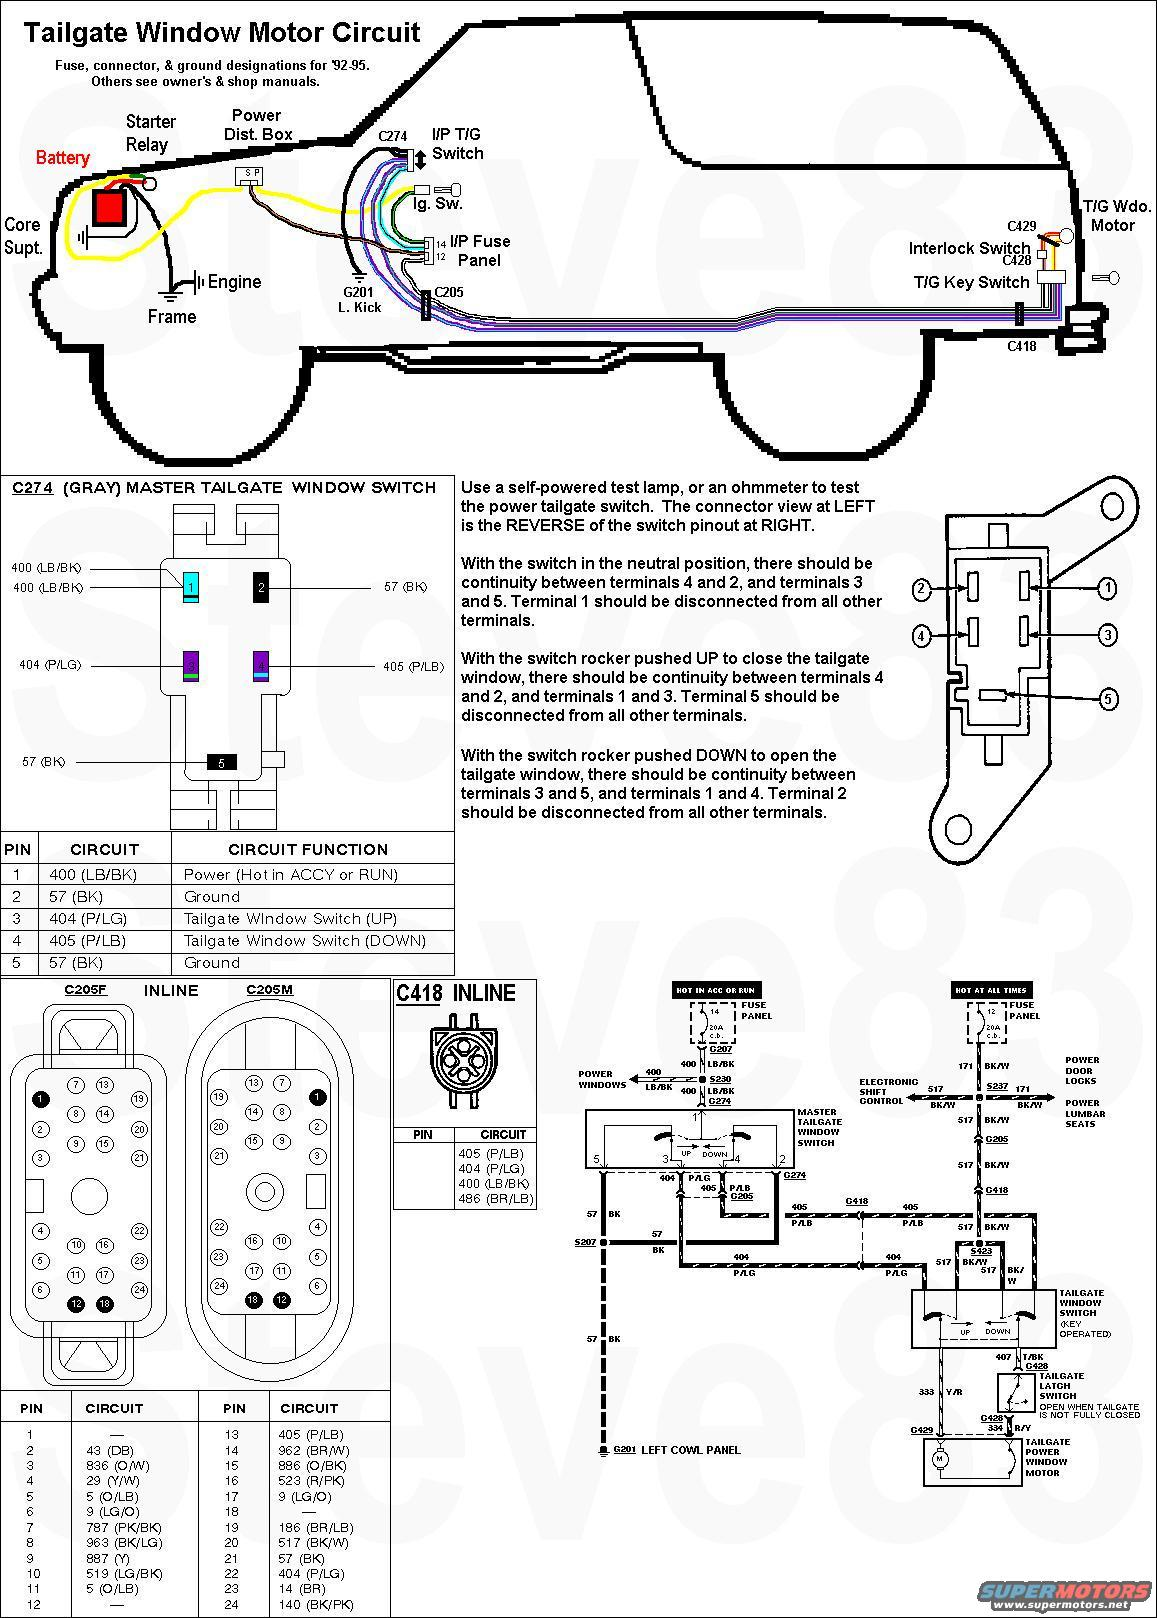 89 bronco ii engine wiring diagram  89  get free image about wiring diagram